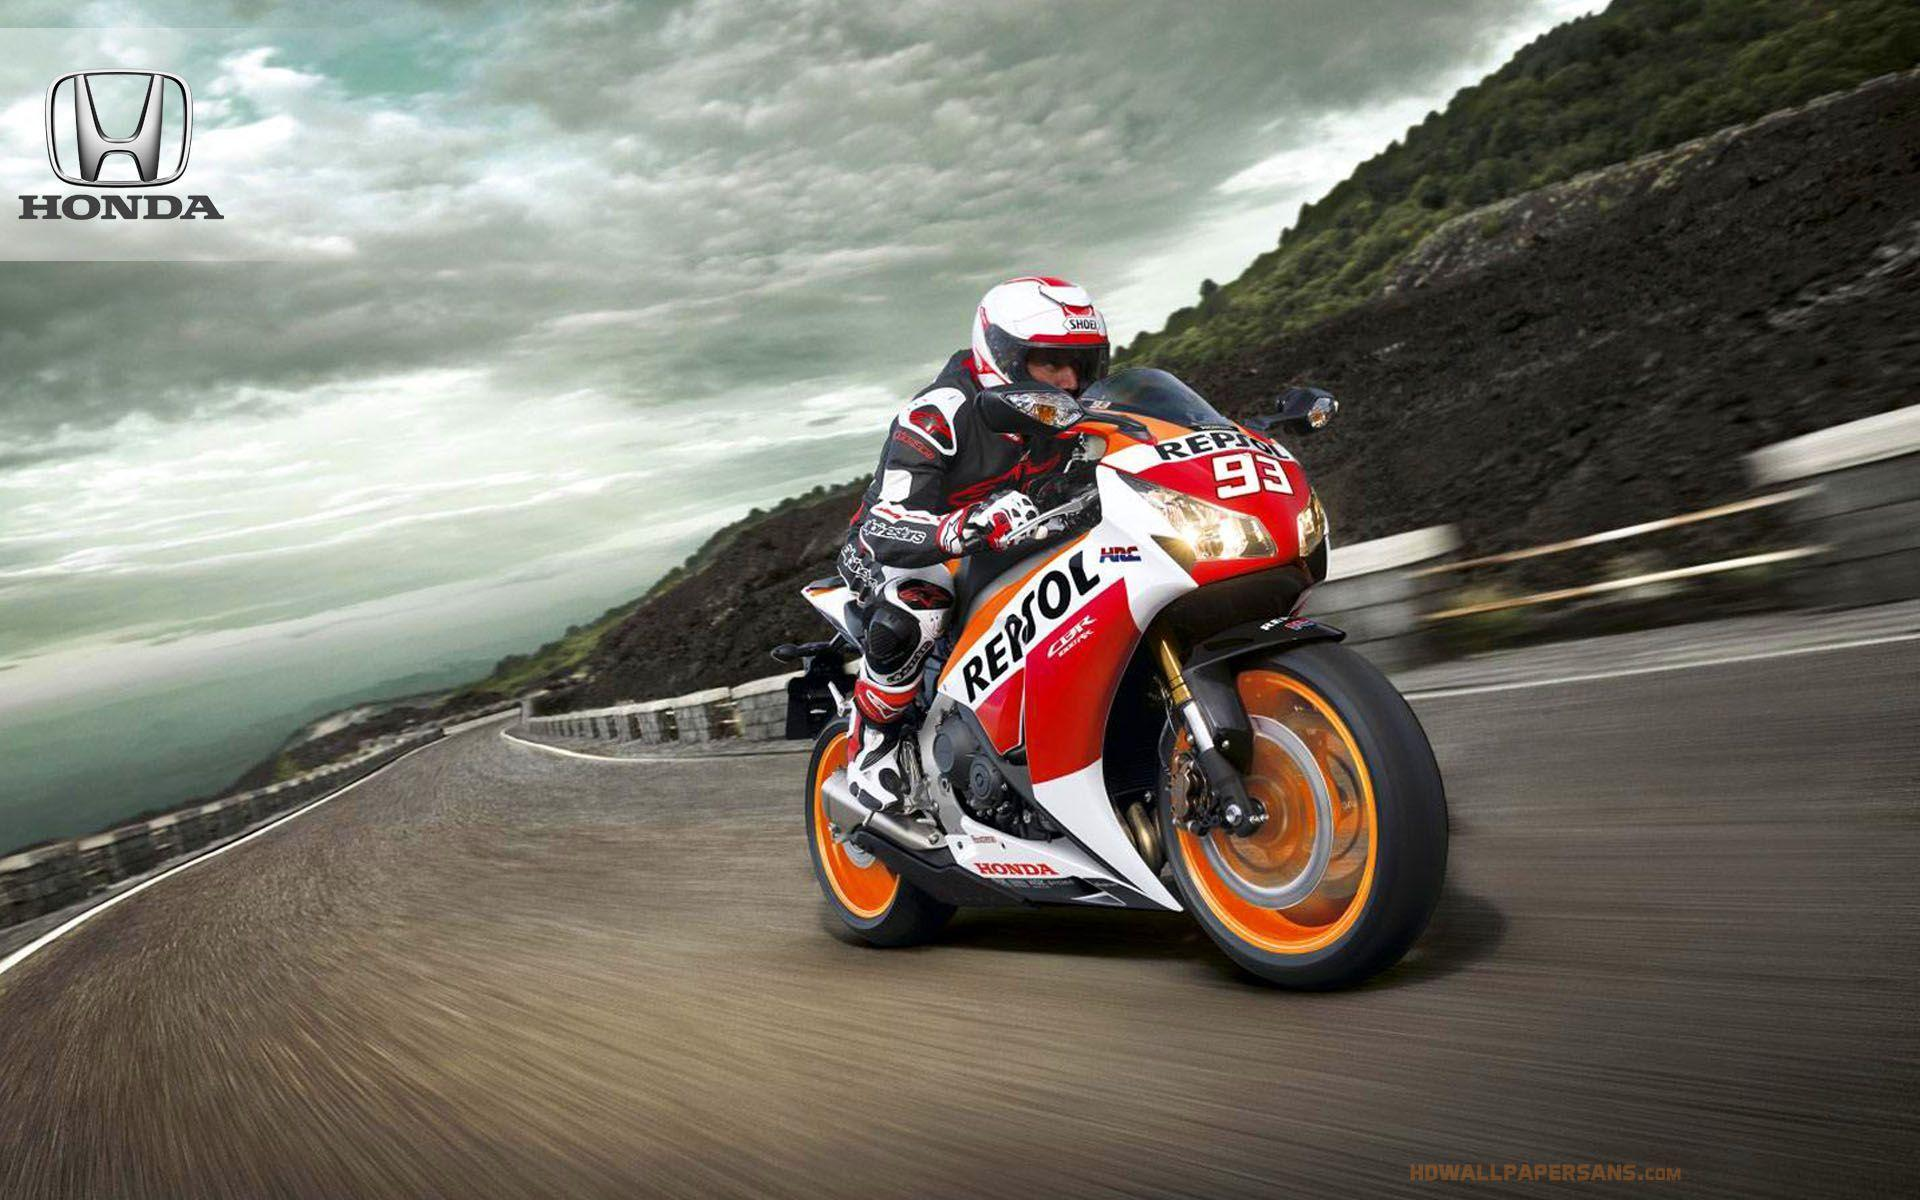 Honda Repsol Wallpaper Motorcycle: CBR1000RR Repsol 2016 HD Wallpapers